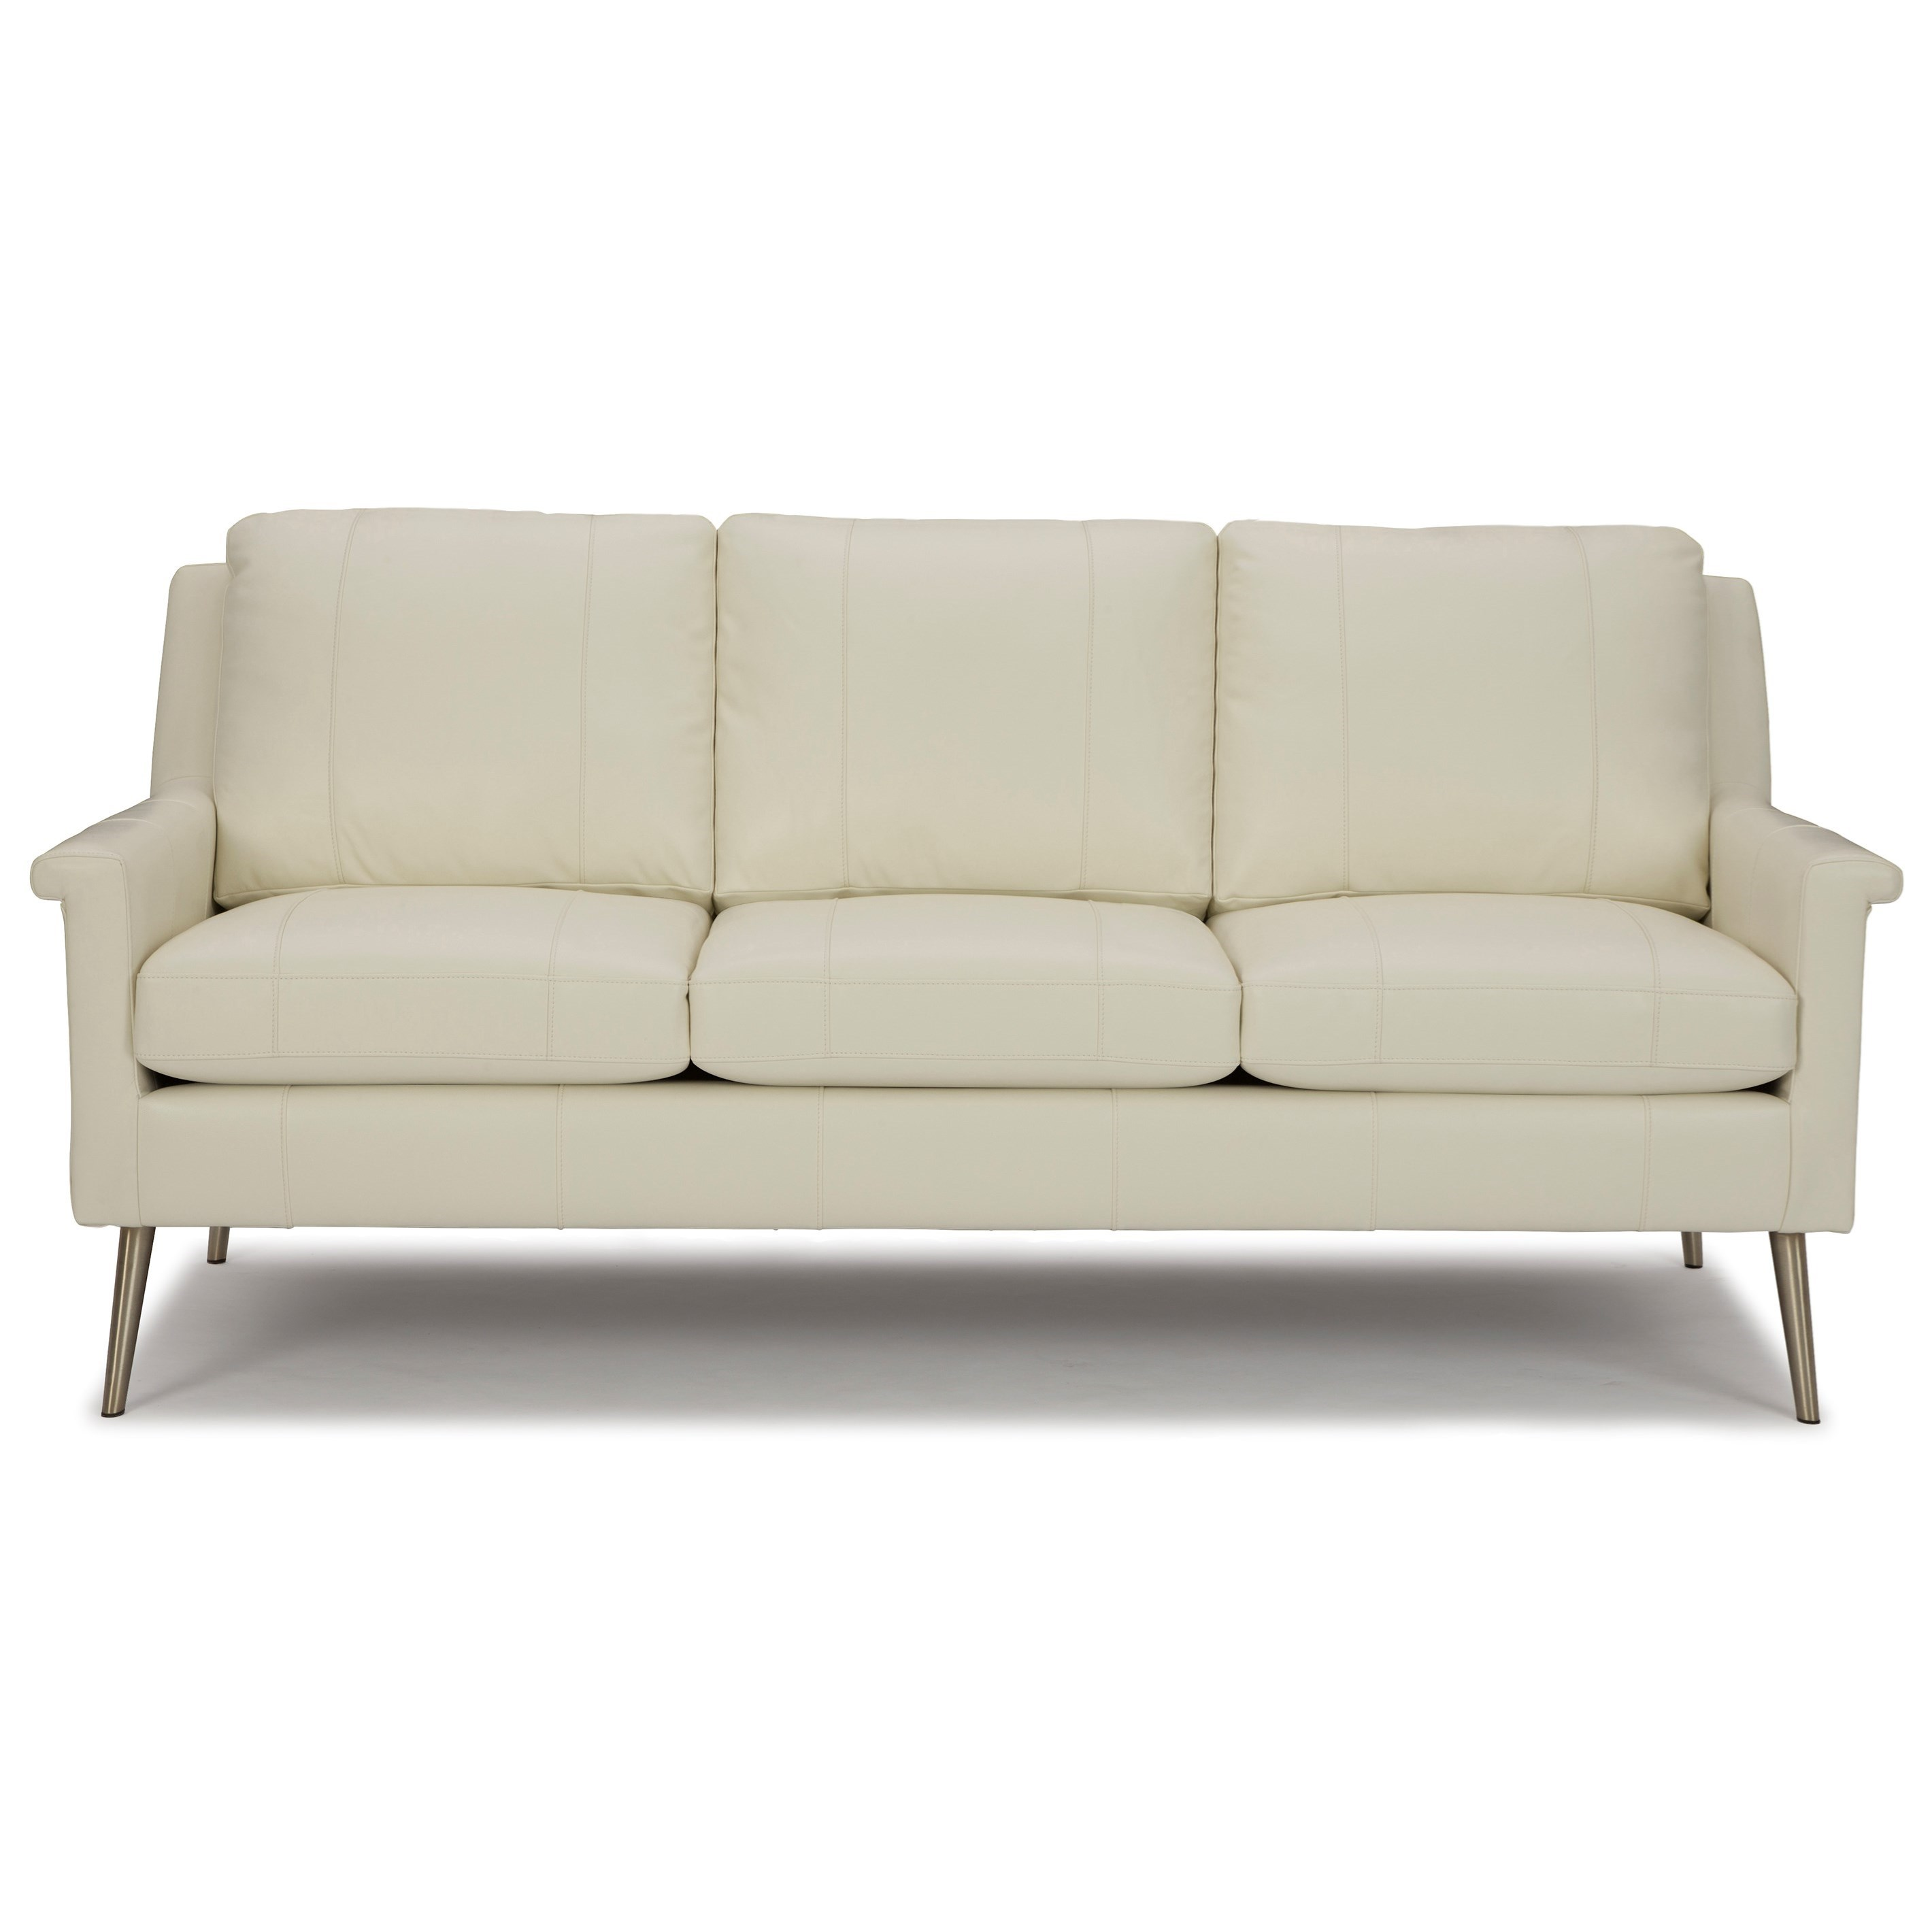 Dacey Sofa by Best Home Furnishings at Best Home Furnishings